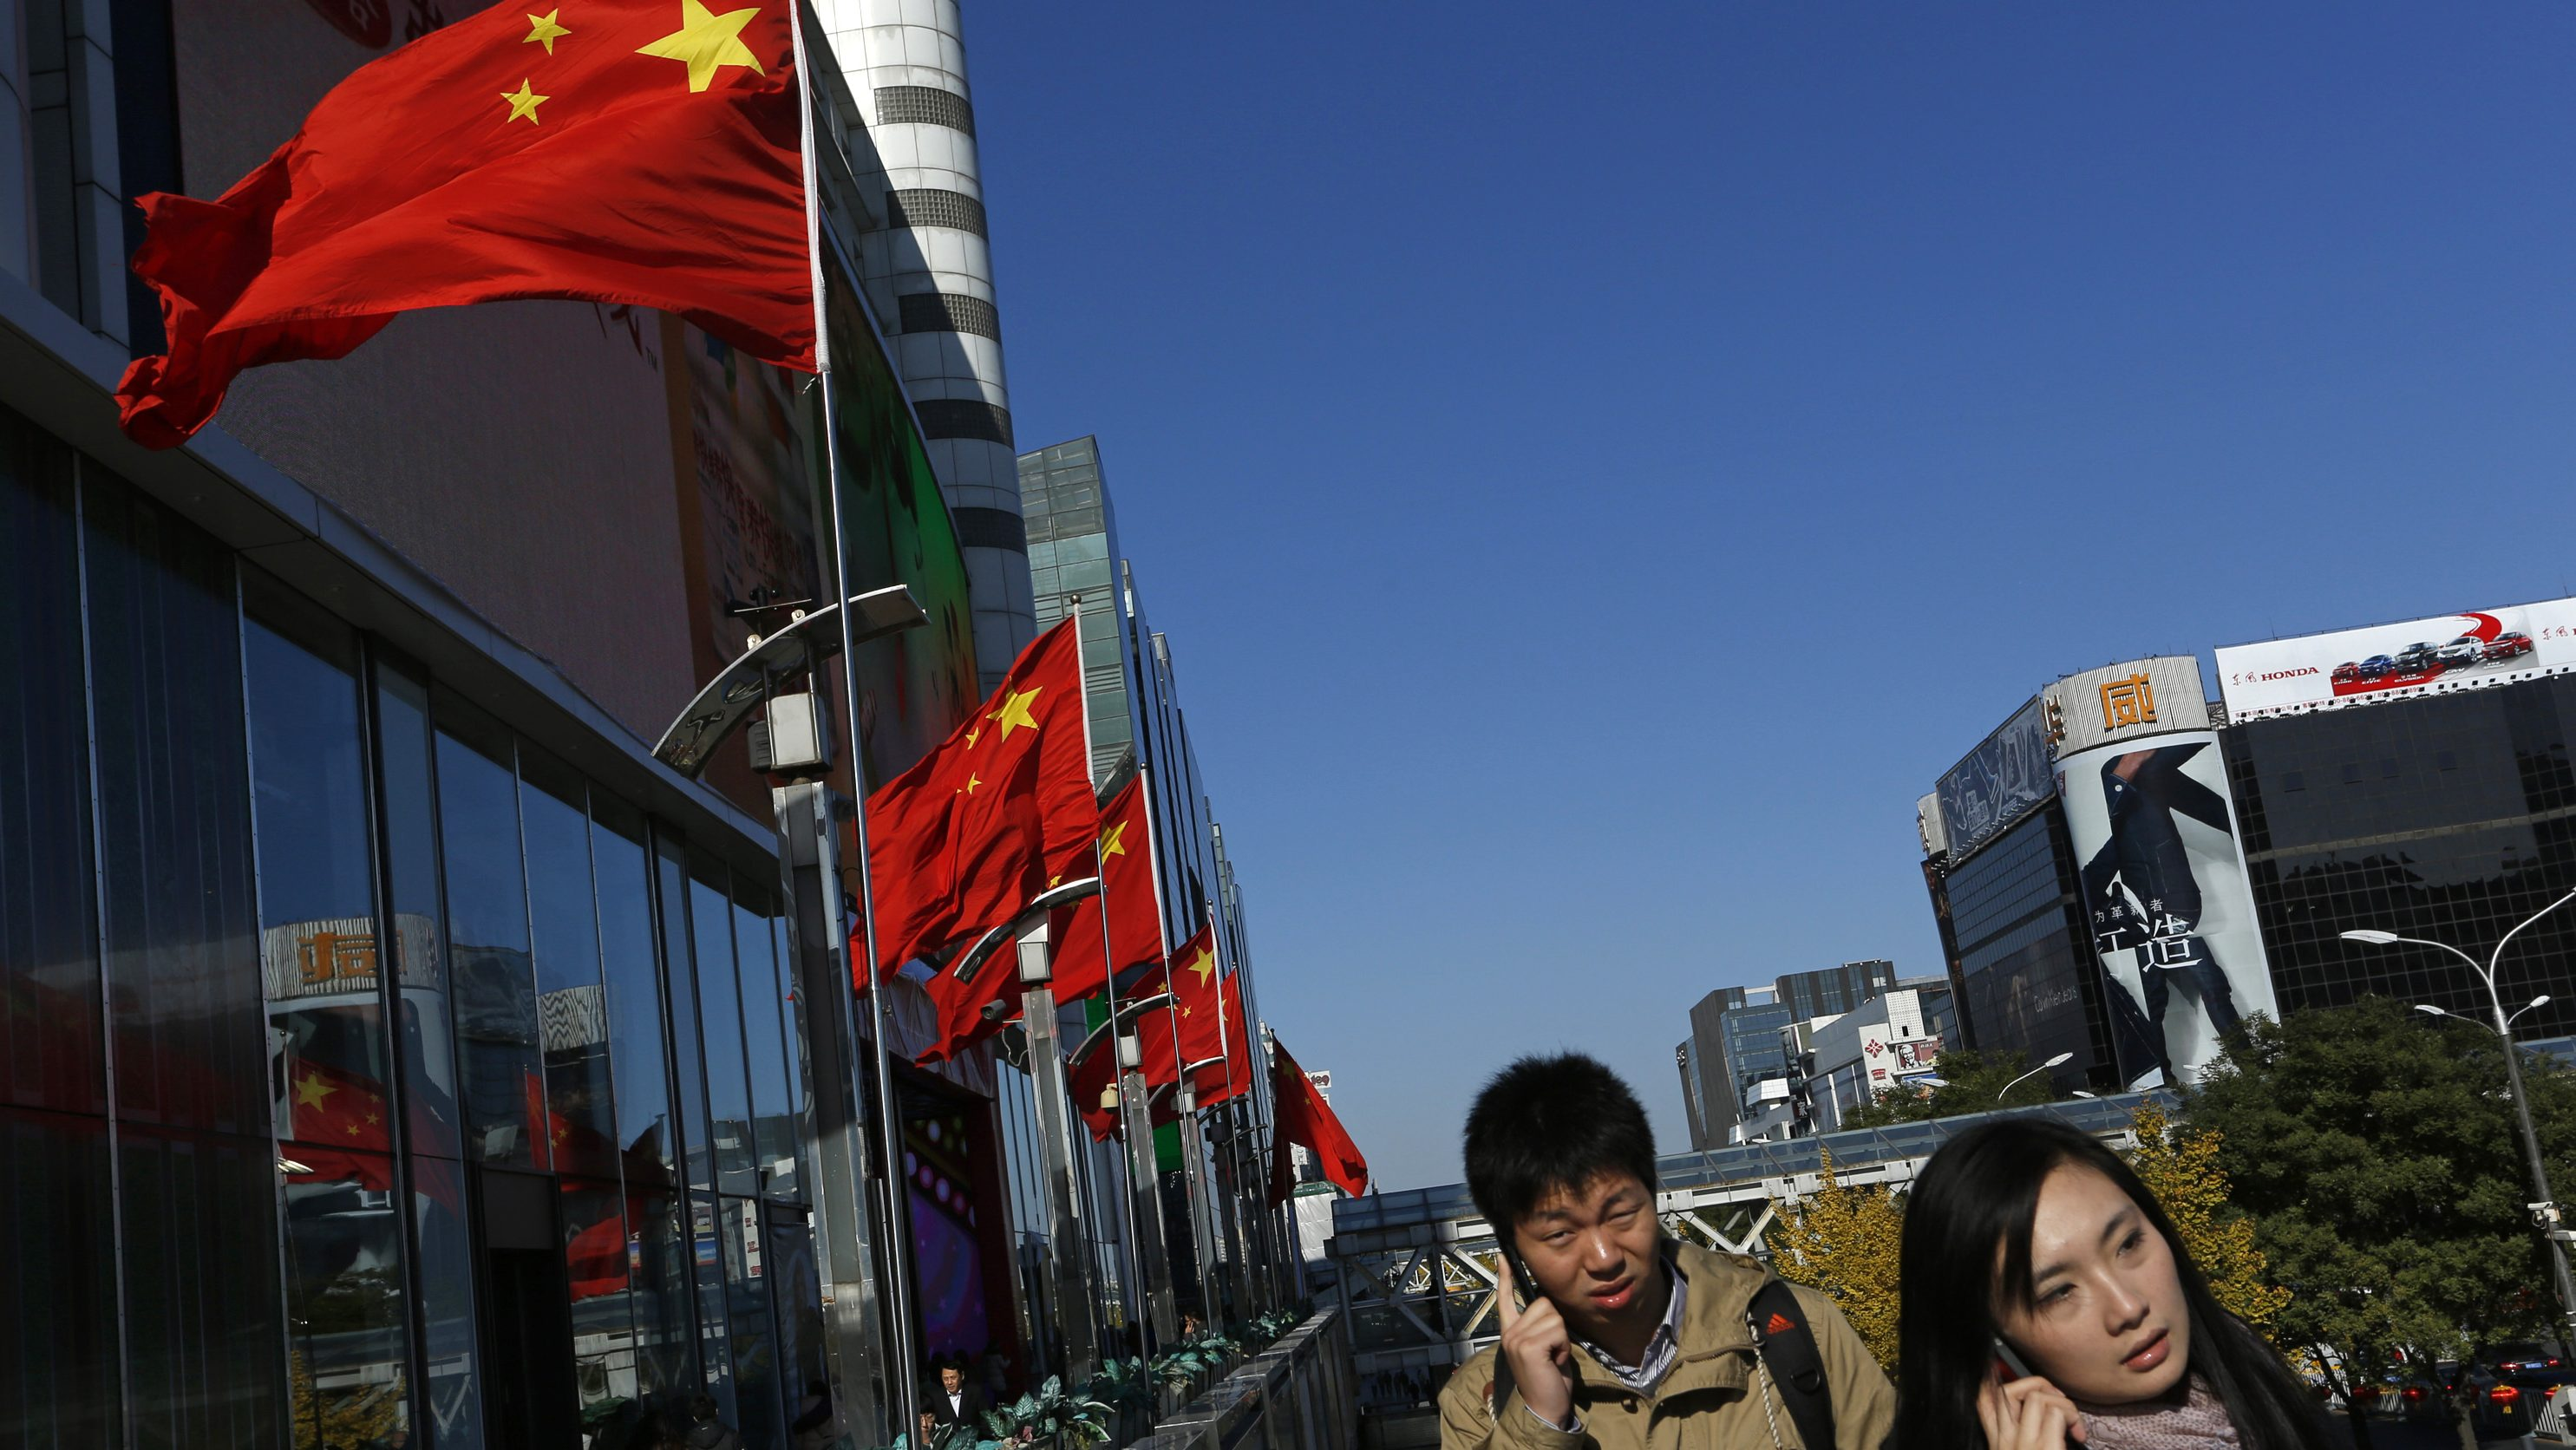 Chinese people talk on mobile phones outside a shopping mall in Beijing, China, Tuesday, Nov. 13, 2012. (AP Photo/Vincent Yu)